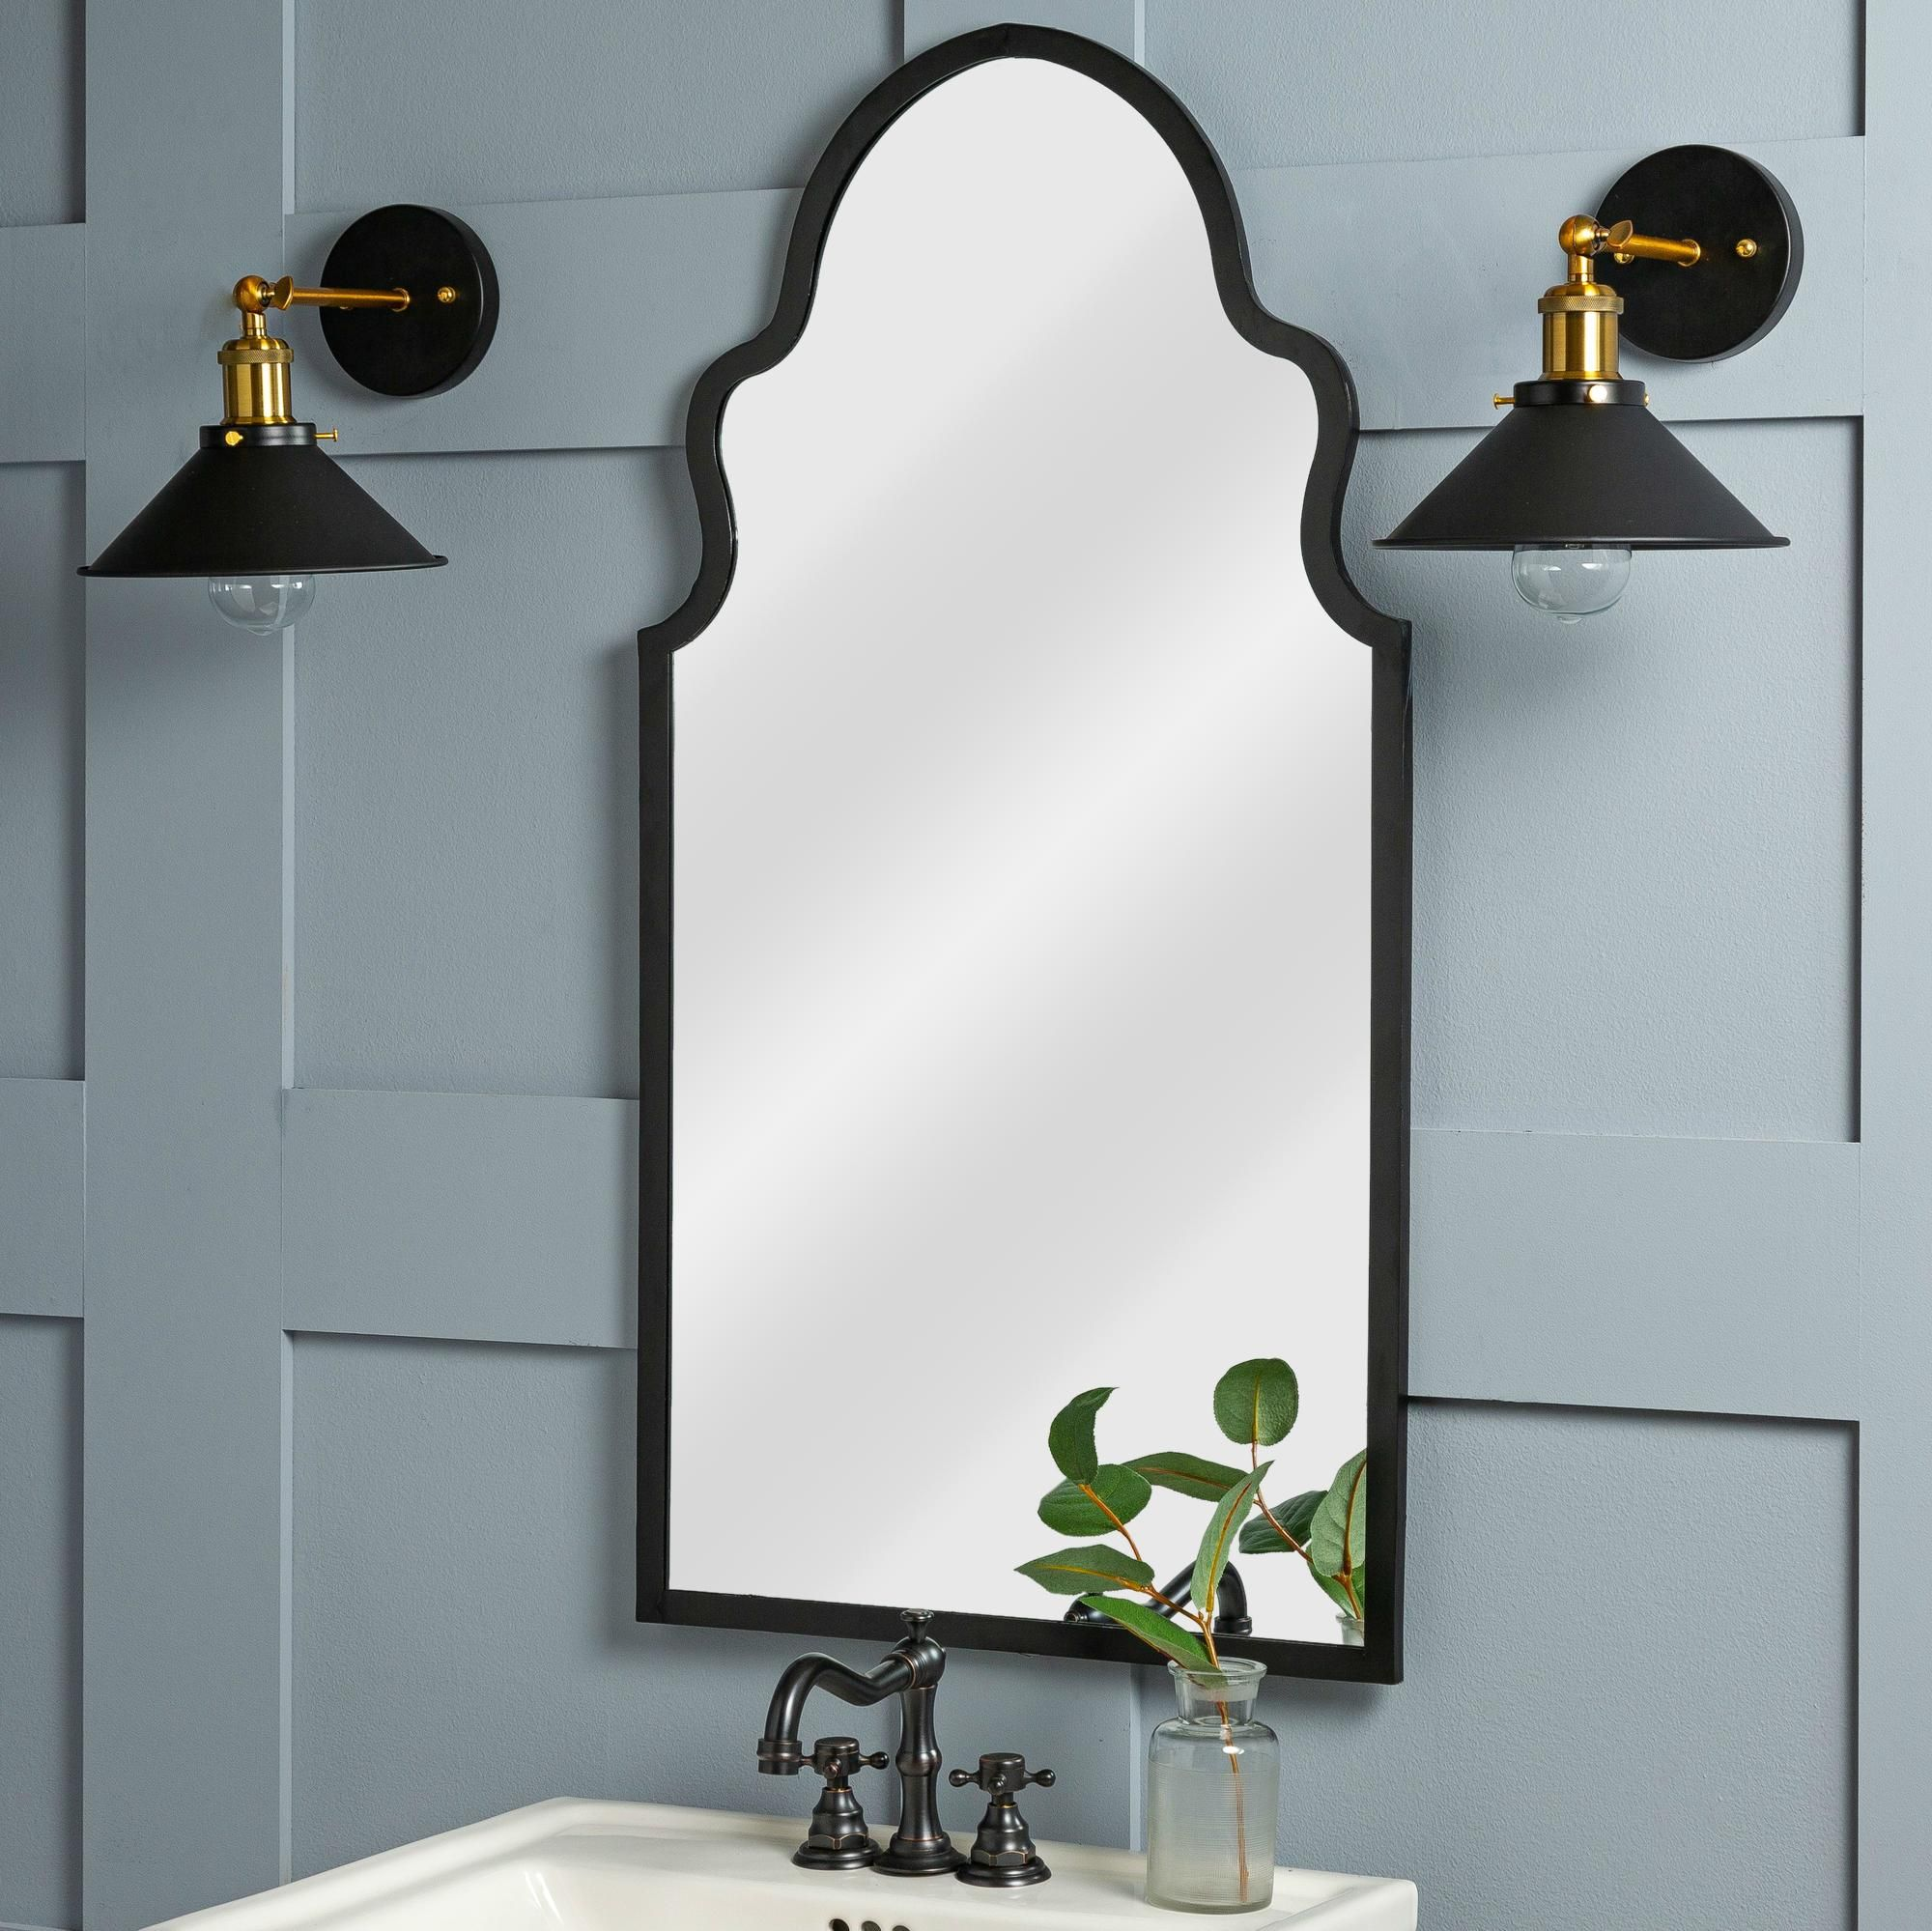 Cooper Classics Collen Black 20 Inch X 37 And Three Quarter Inch Wall Mirror In 2020 Mirror Wall Modern Bathroom Faucets Traditional Wall Mirrors